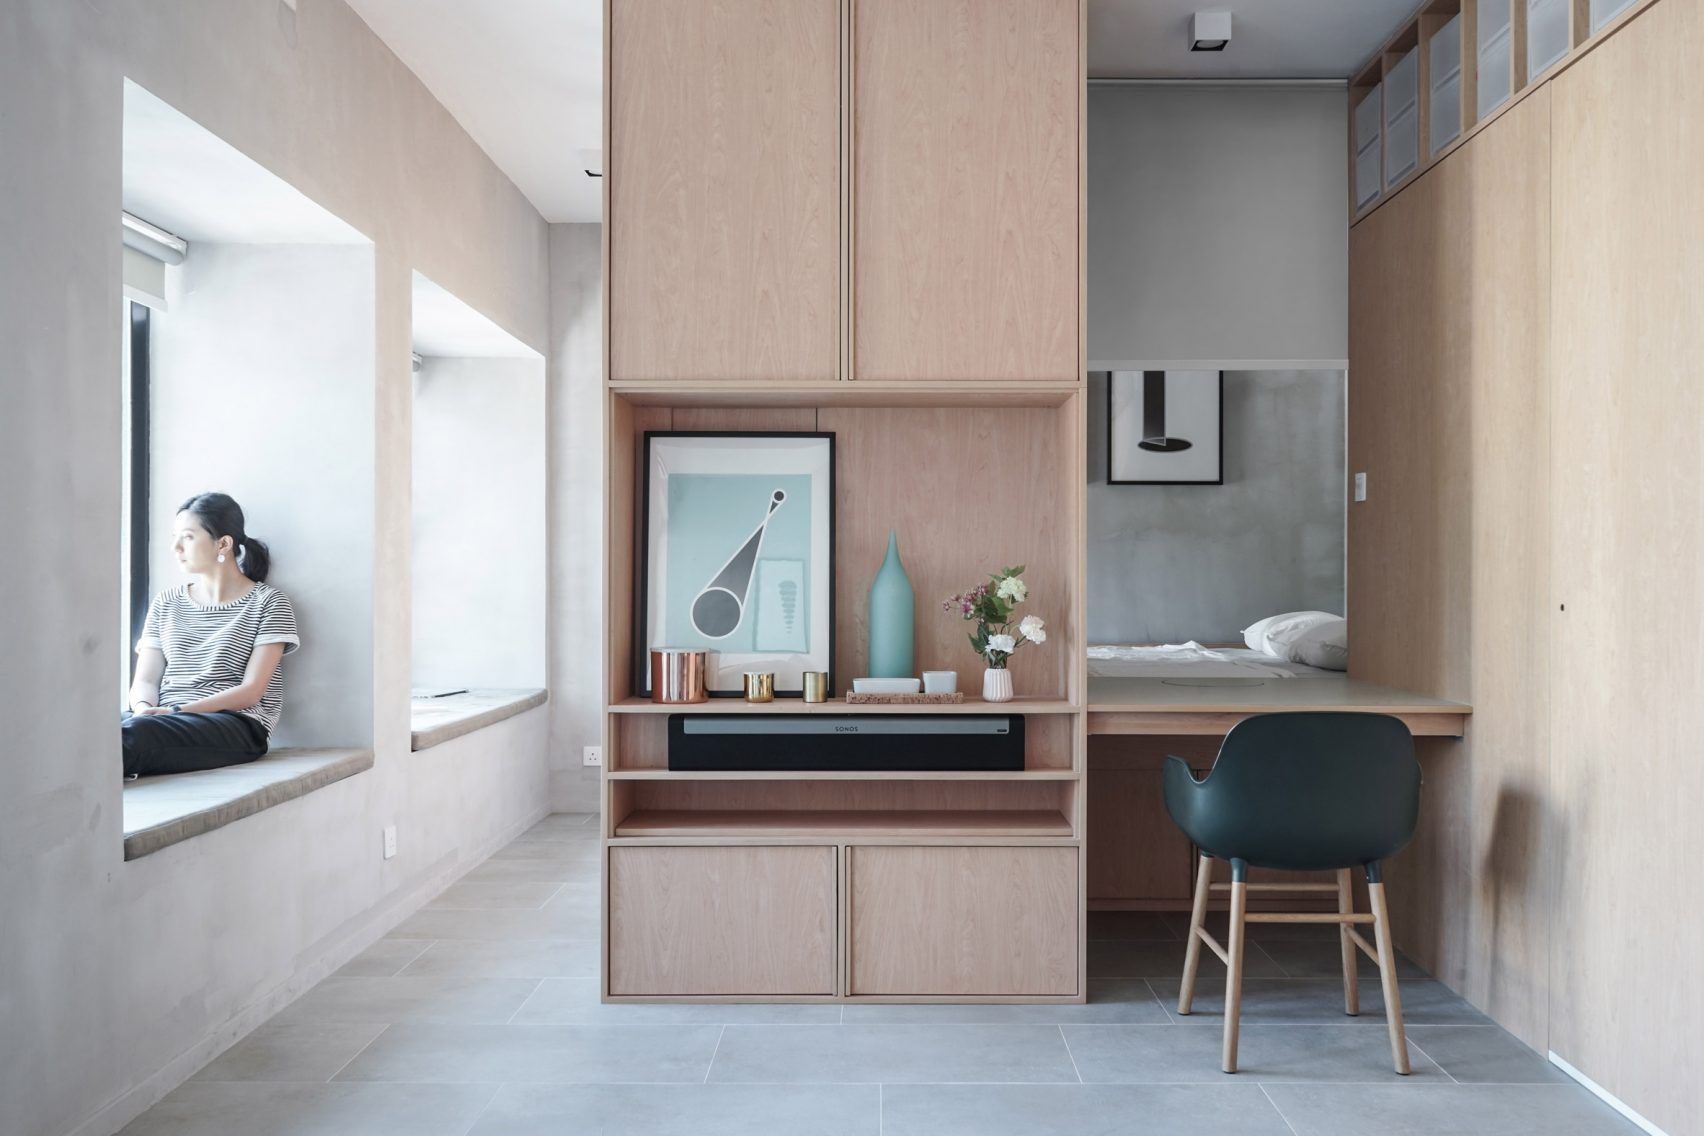 JAAK reconfigures Hong Kong apartment with space saving cabinetry